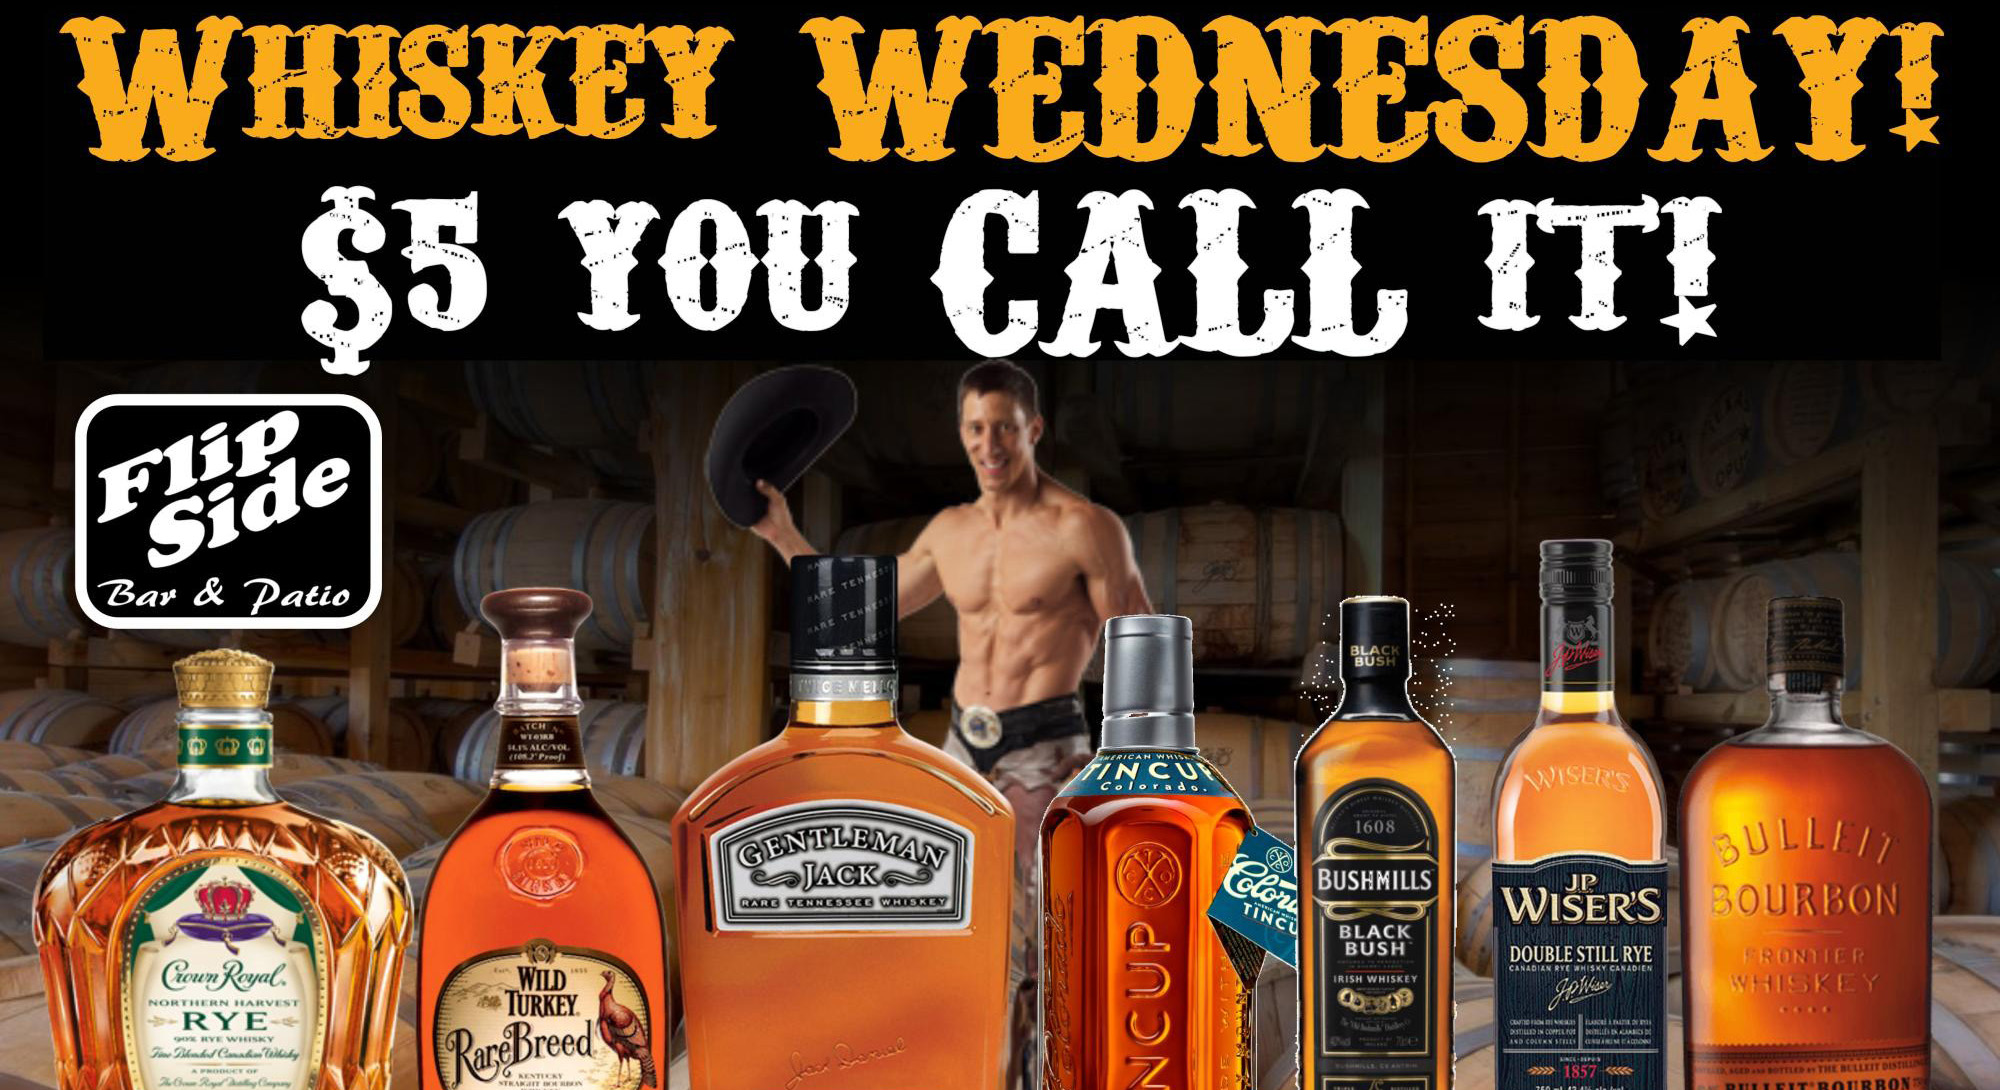 Whiskey Wednesday!